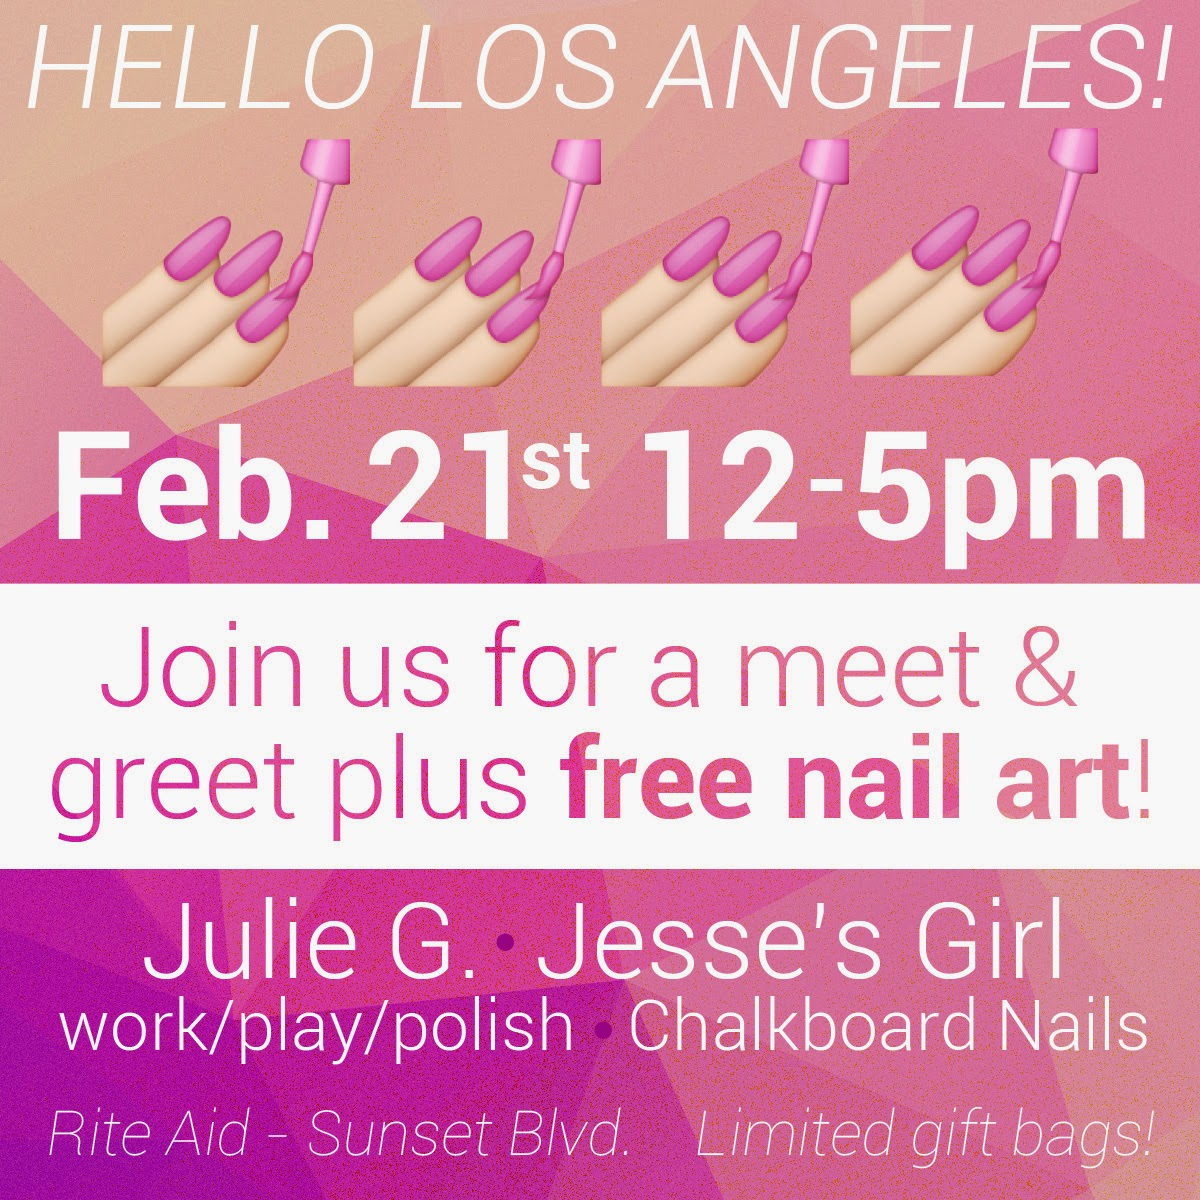 Los Angeles Meet Up - JulieG, Chalkboard Nails, work/play/polish